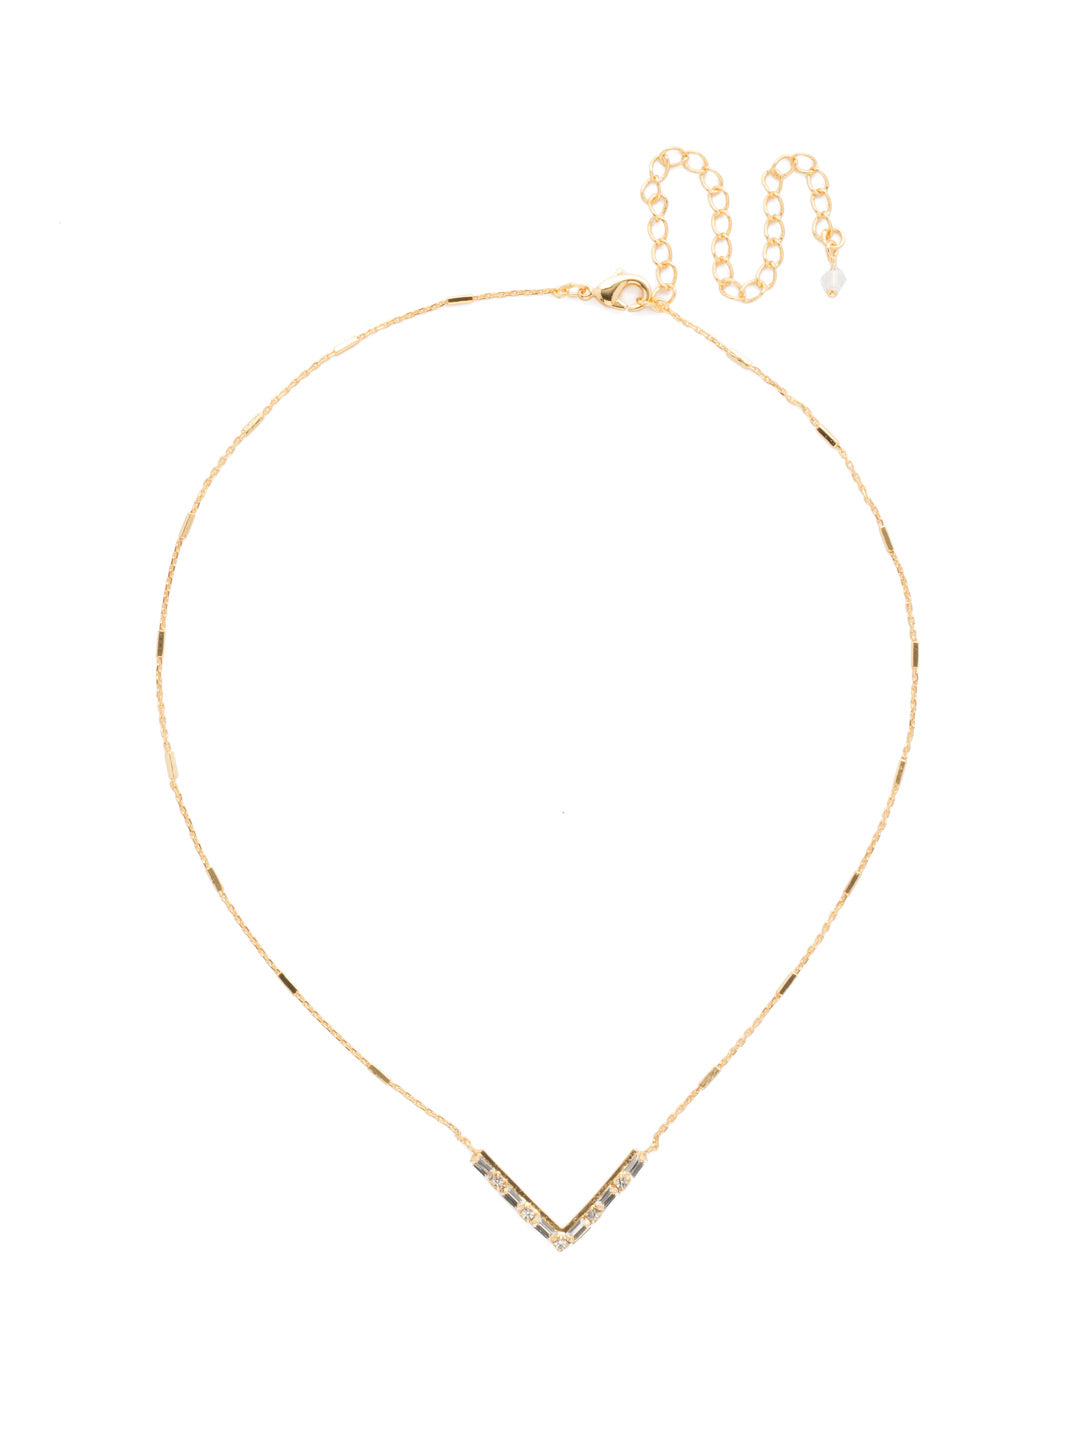 Chevron Pendant Necklace - NDM9BGCRY